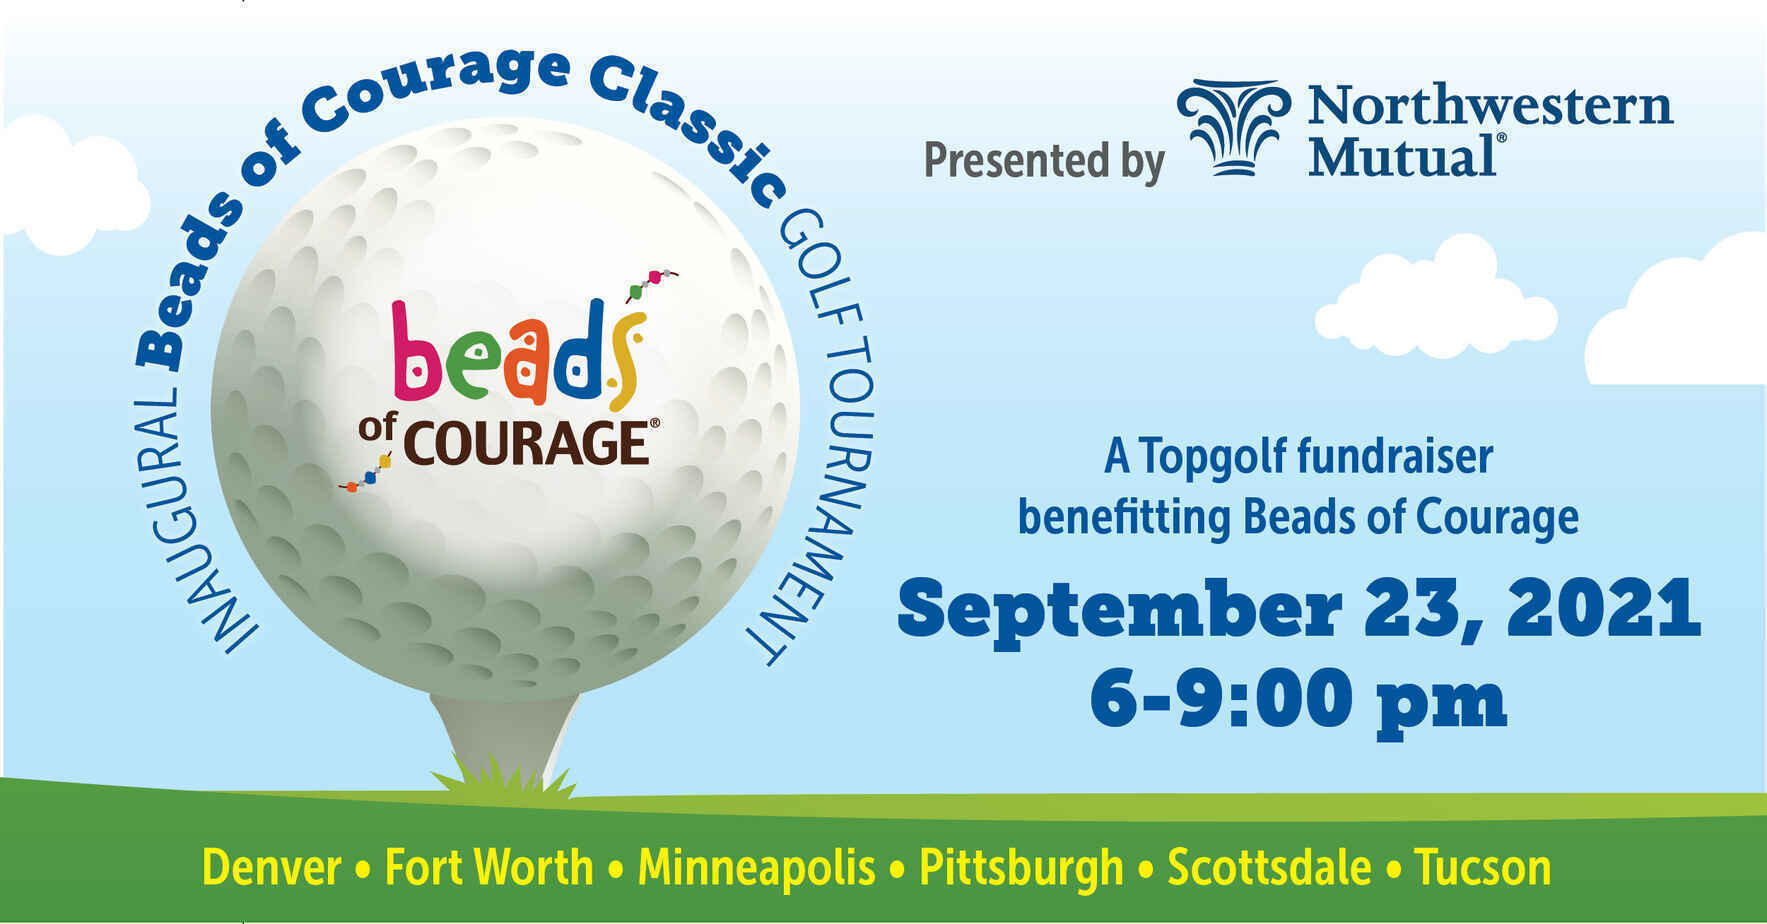 2021 Scottsdale Beads of Courage Classic Golf Tournament  image